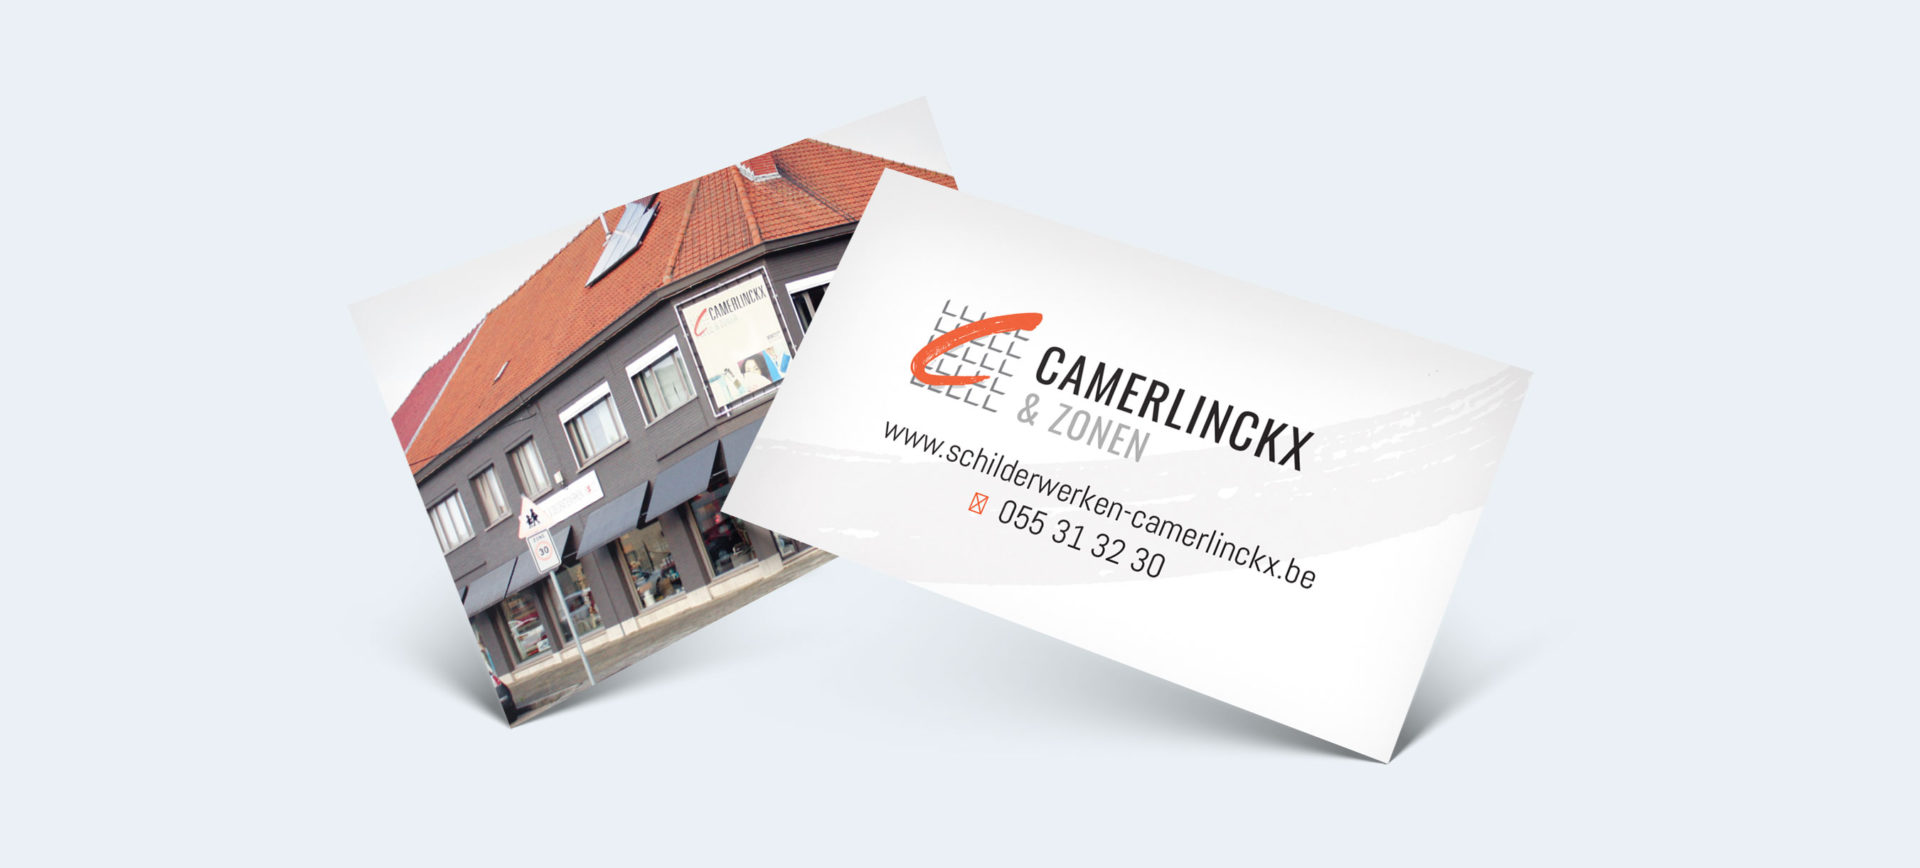 project-camerlinckx-image_3